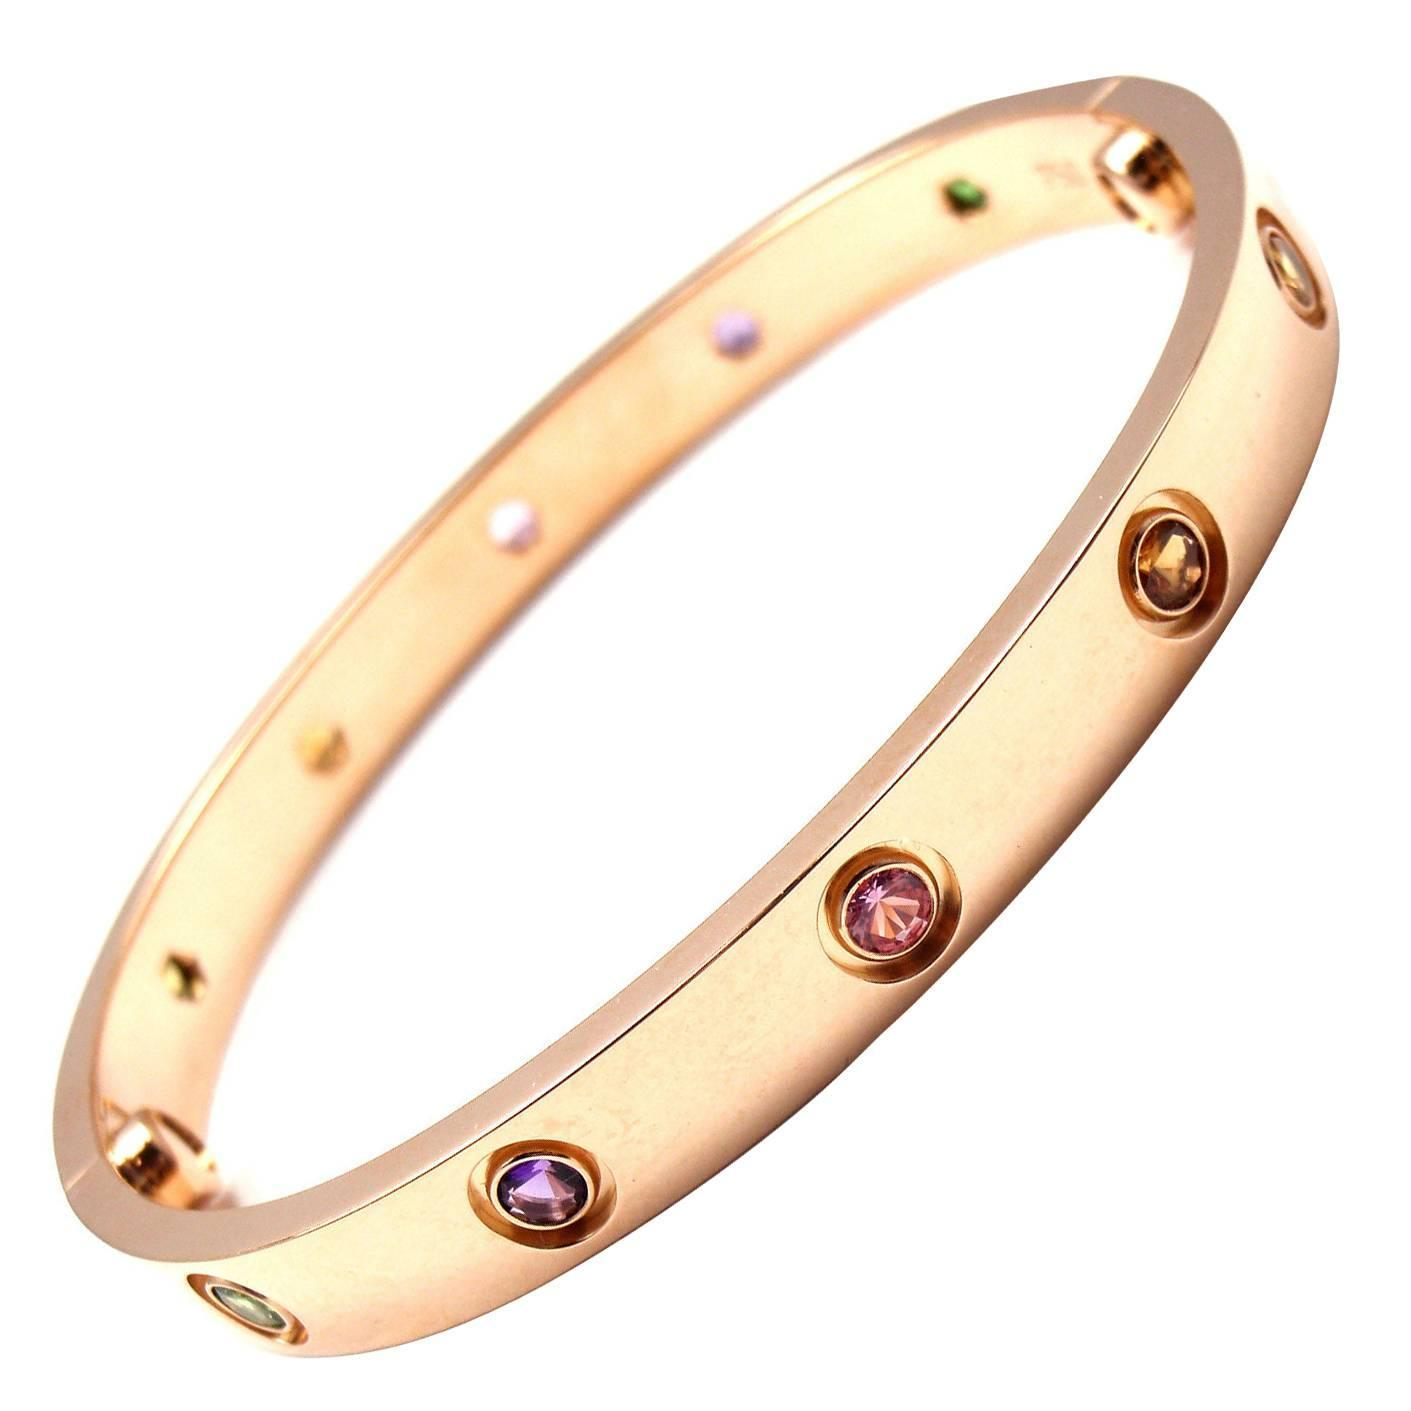 bangles pink bangle serviced box screw cartier gold size new rose love bracelet terrafinejewelry products